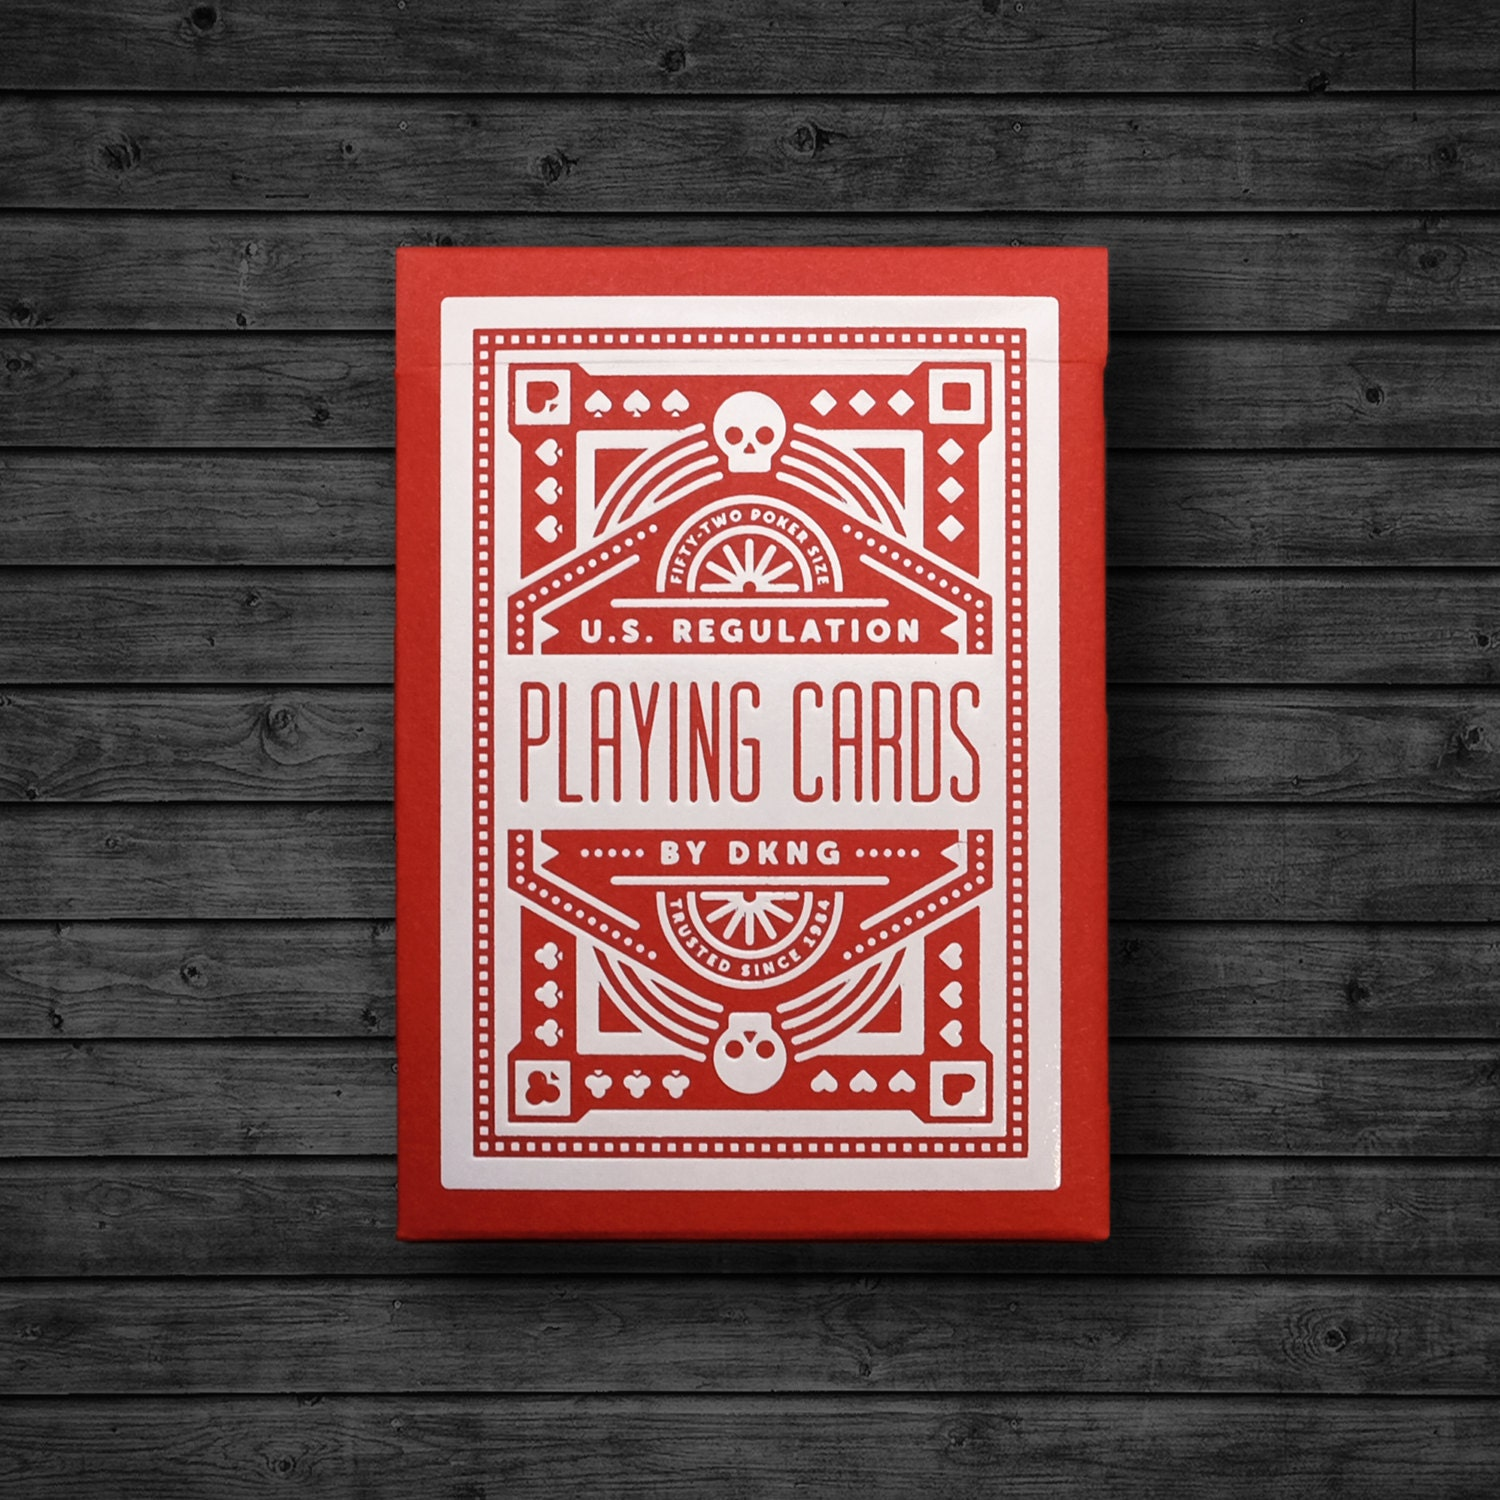 DKNG \'Red Wheel\' Playing Cards | Etsy